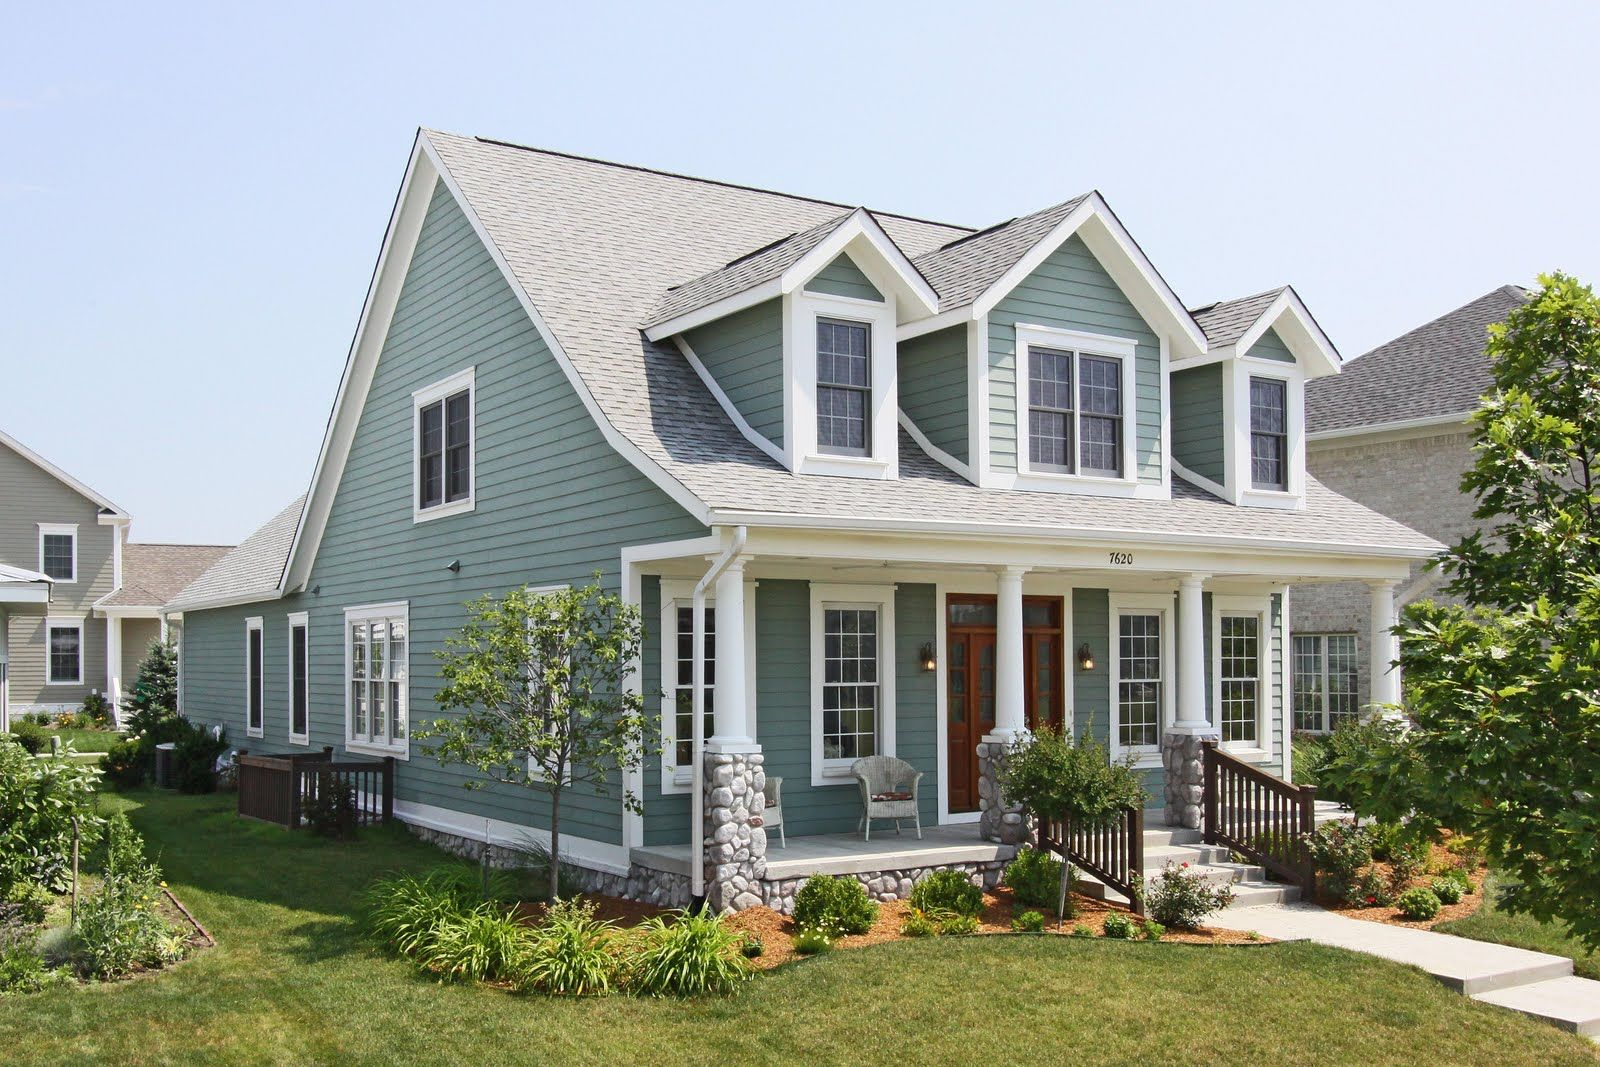 Cape Cod With Dormers And Porch Not In Love With The Stone Not - Colonial cape cod style house plans